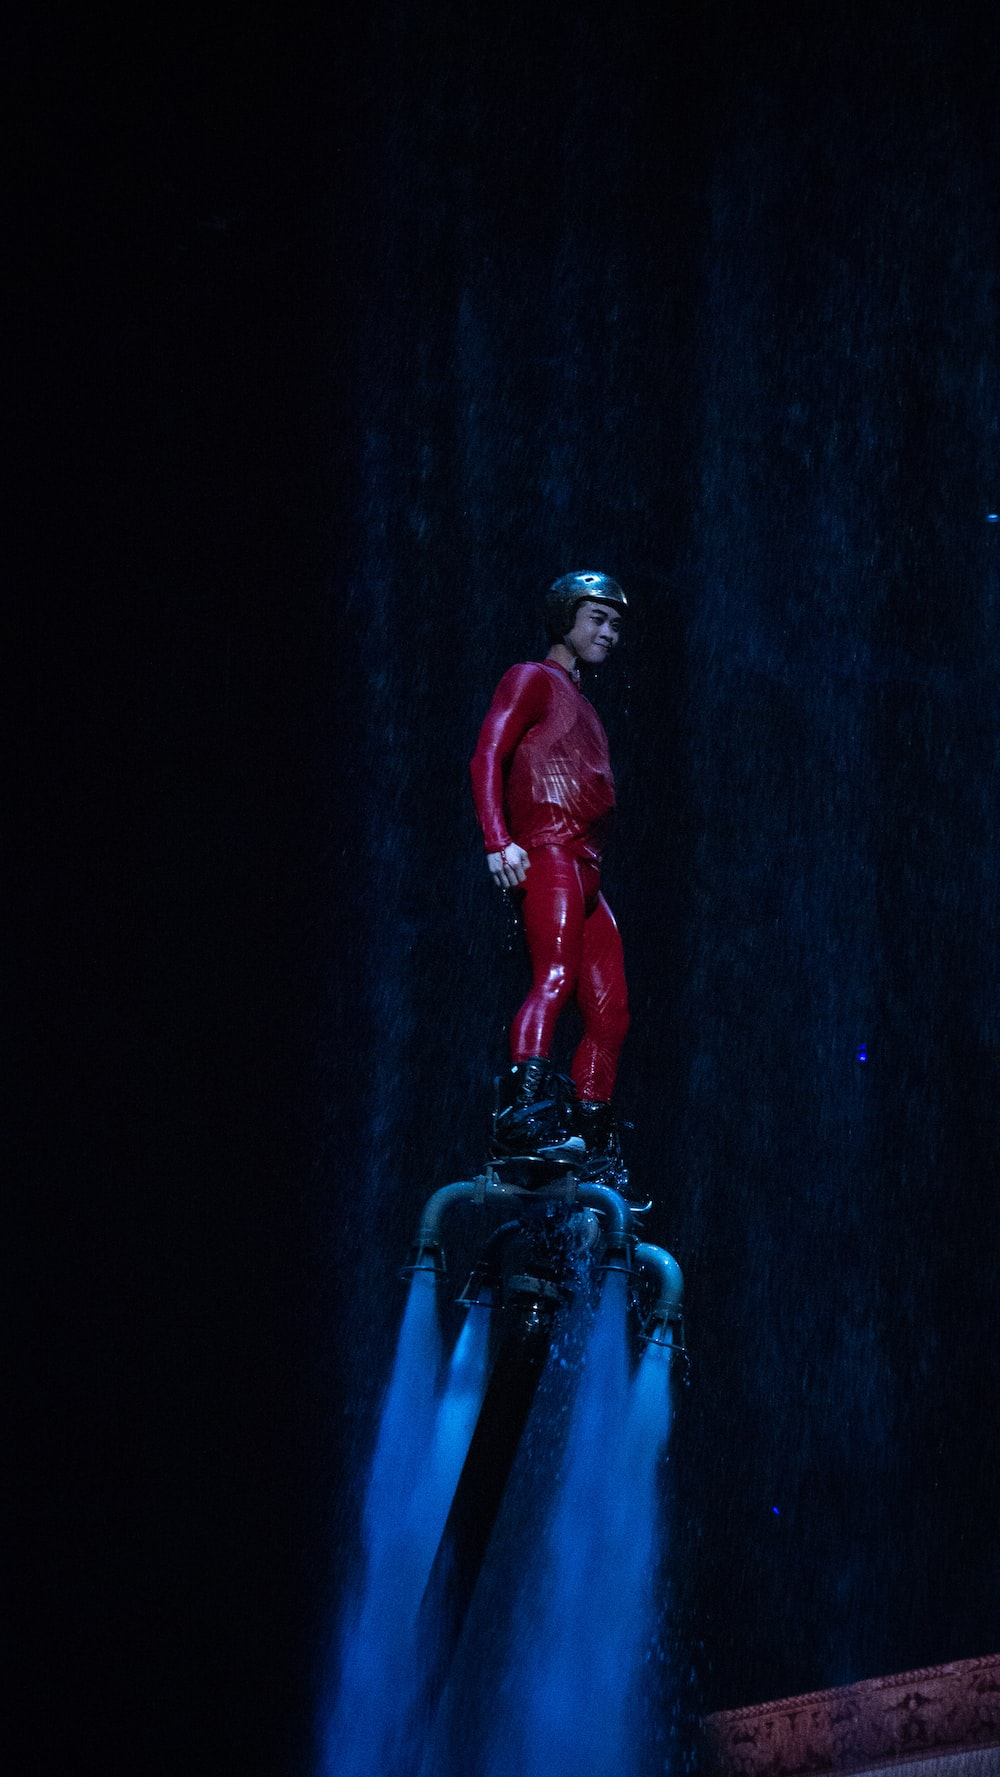 man in red suit action figure